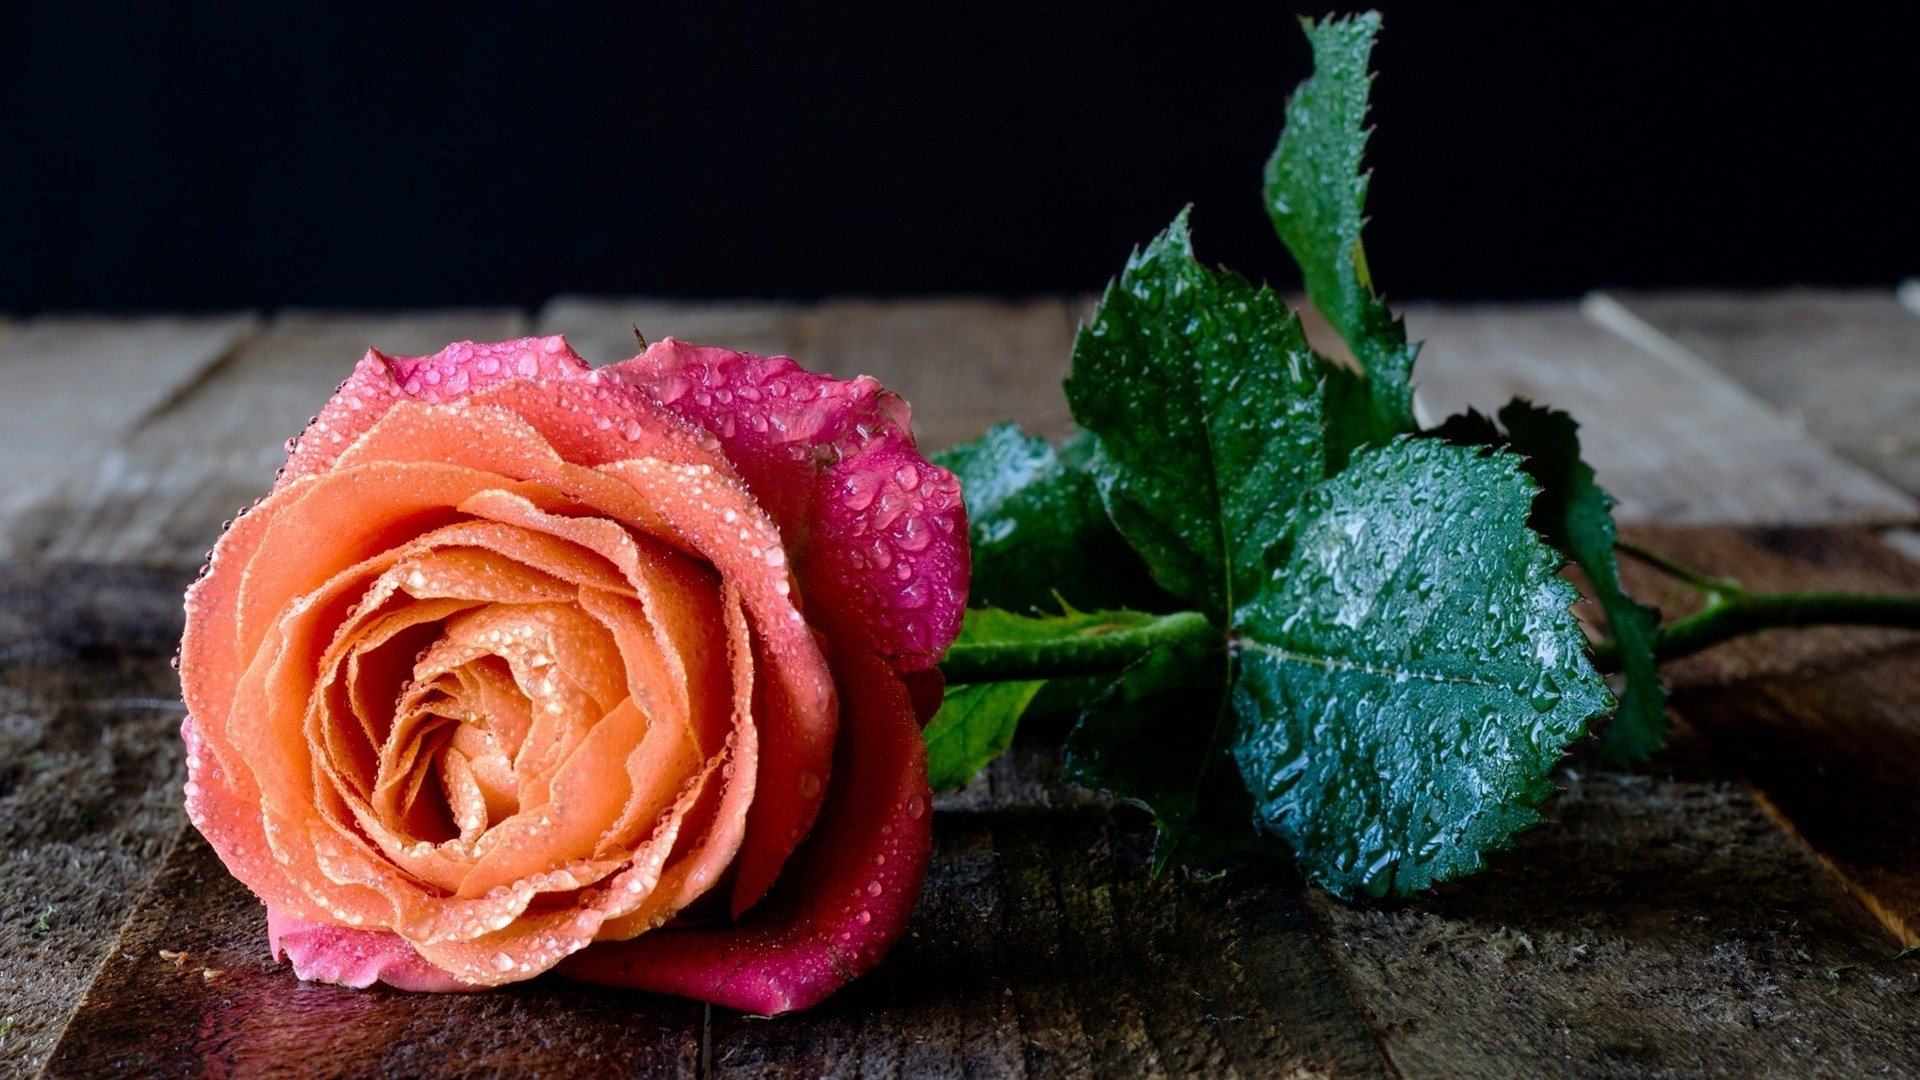 Rose with Water Drops HD Wallpaper | Background Image | 1920x1080